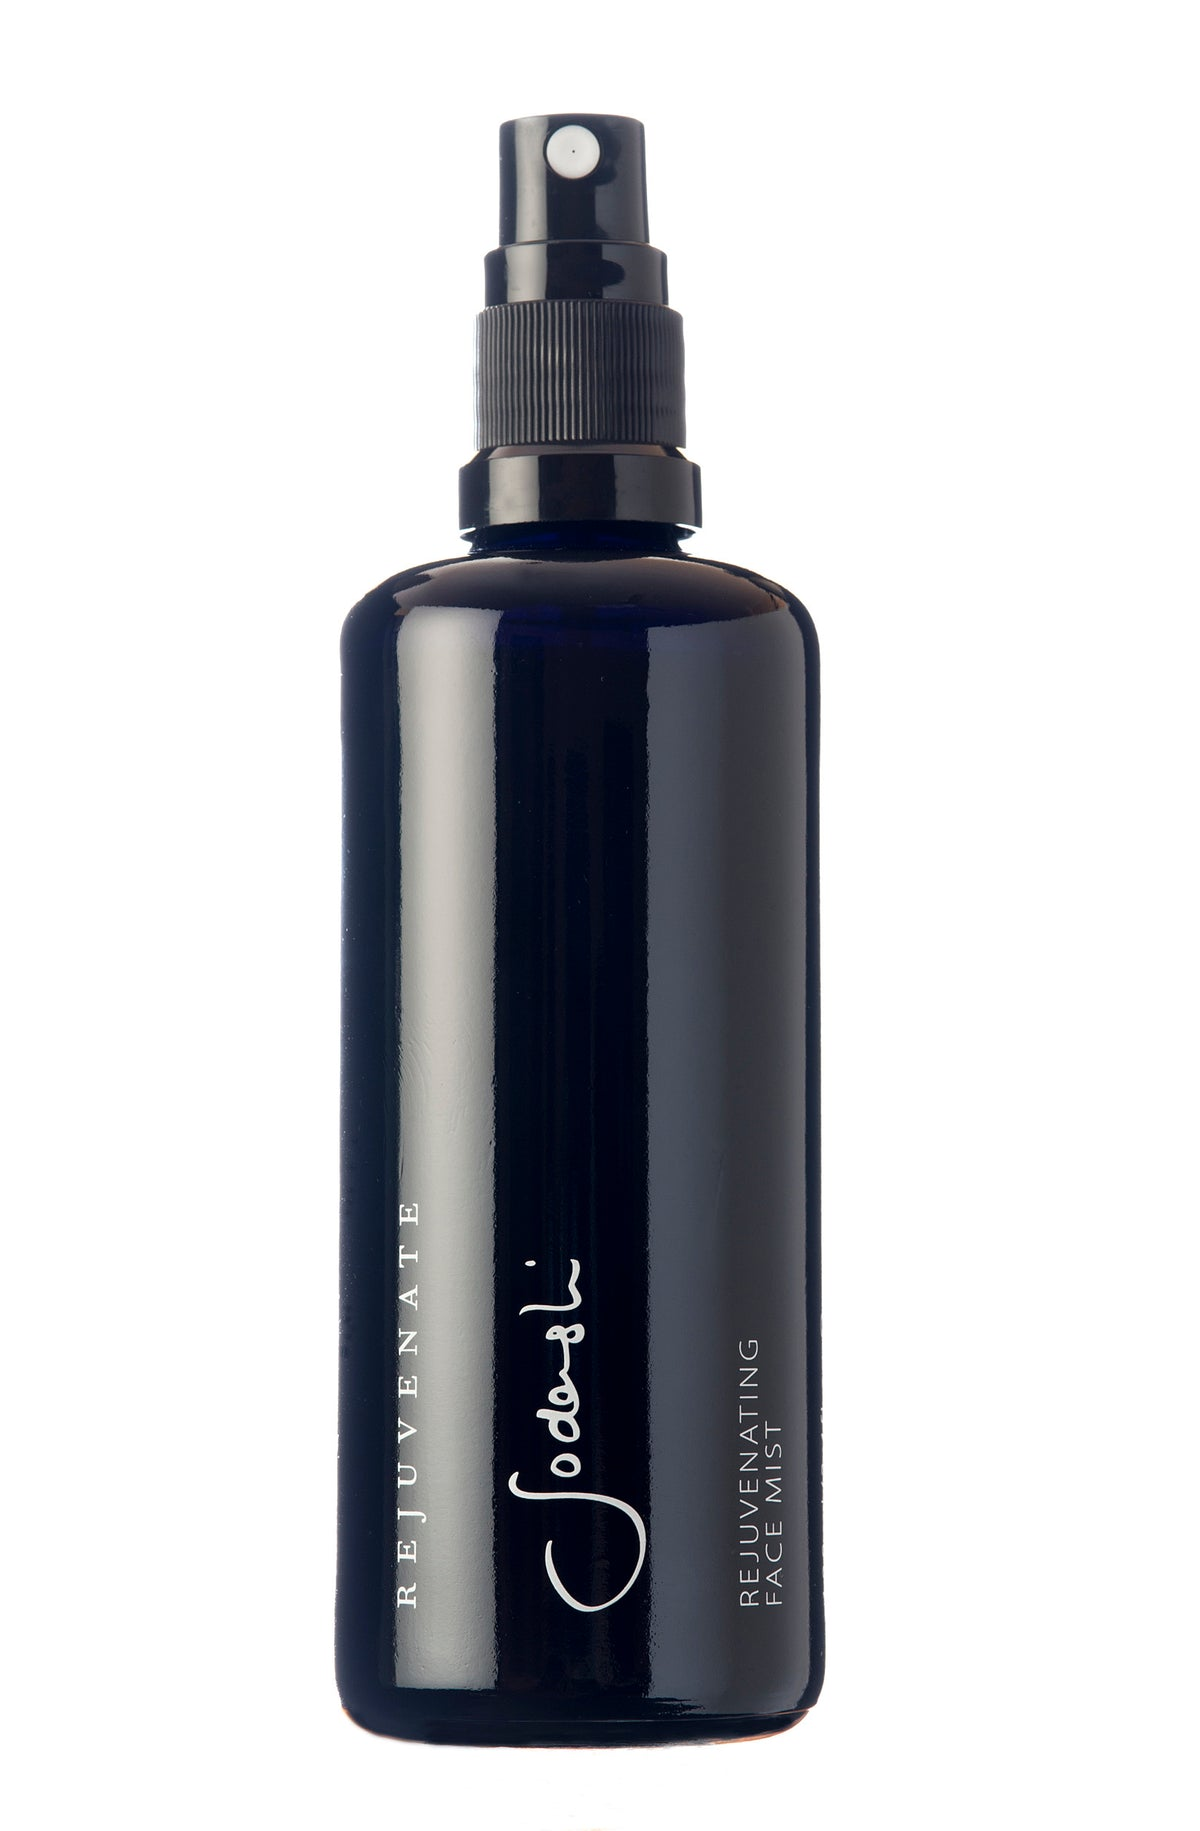 Rejuvenating Face Mist